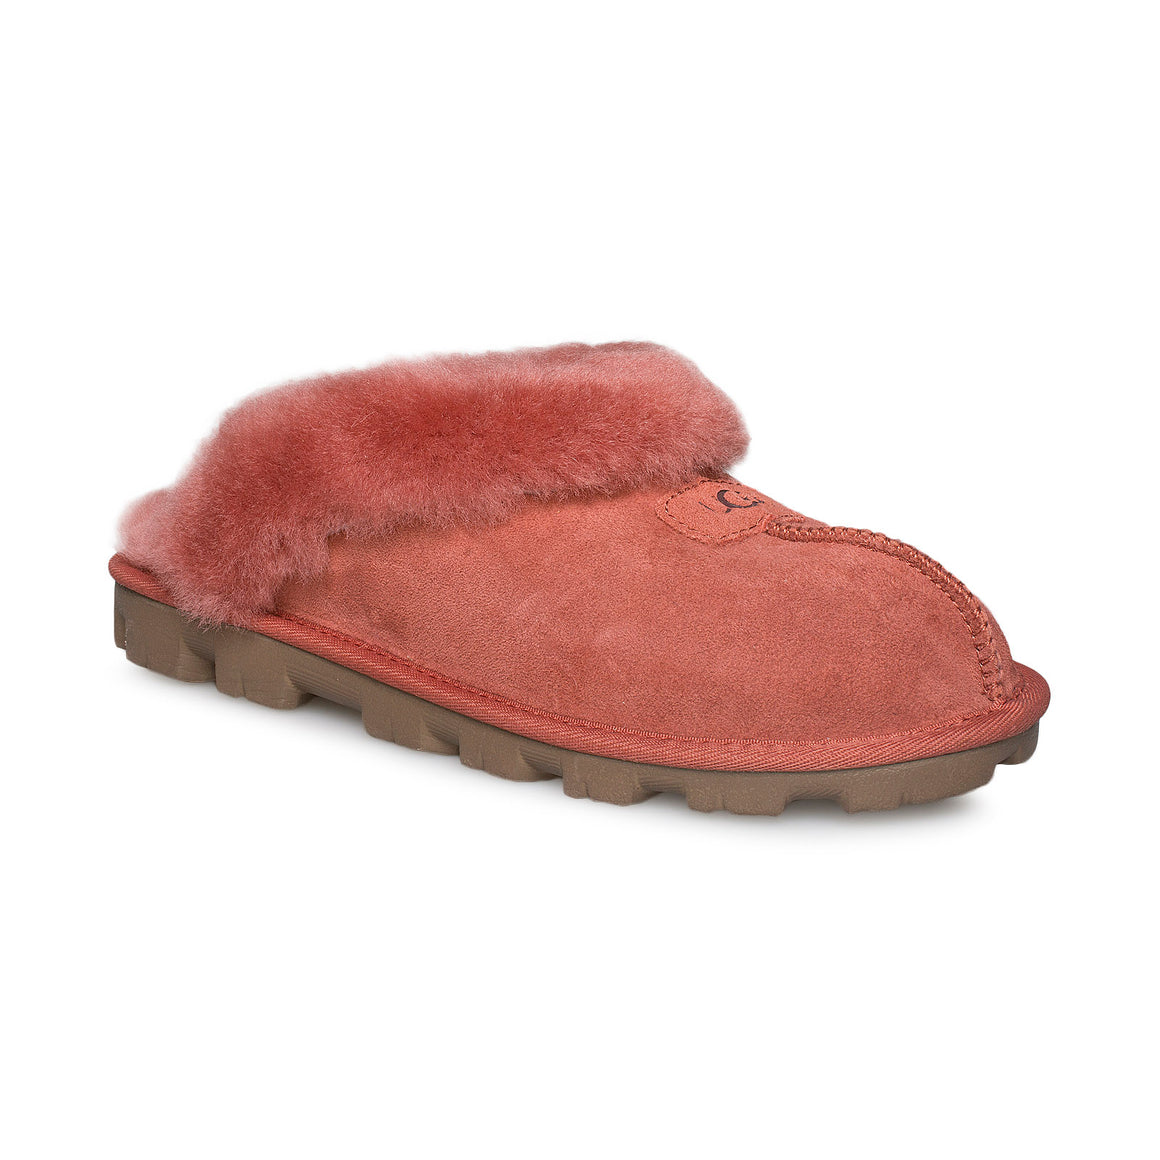 UGG Coquette Terracotta Slippers - Women's